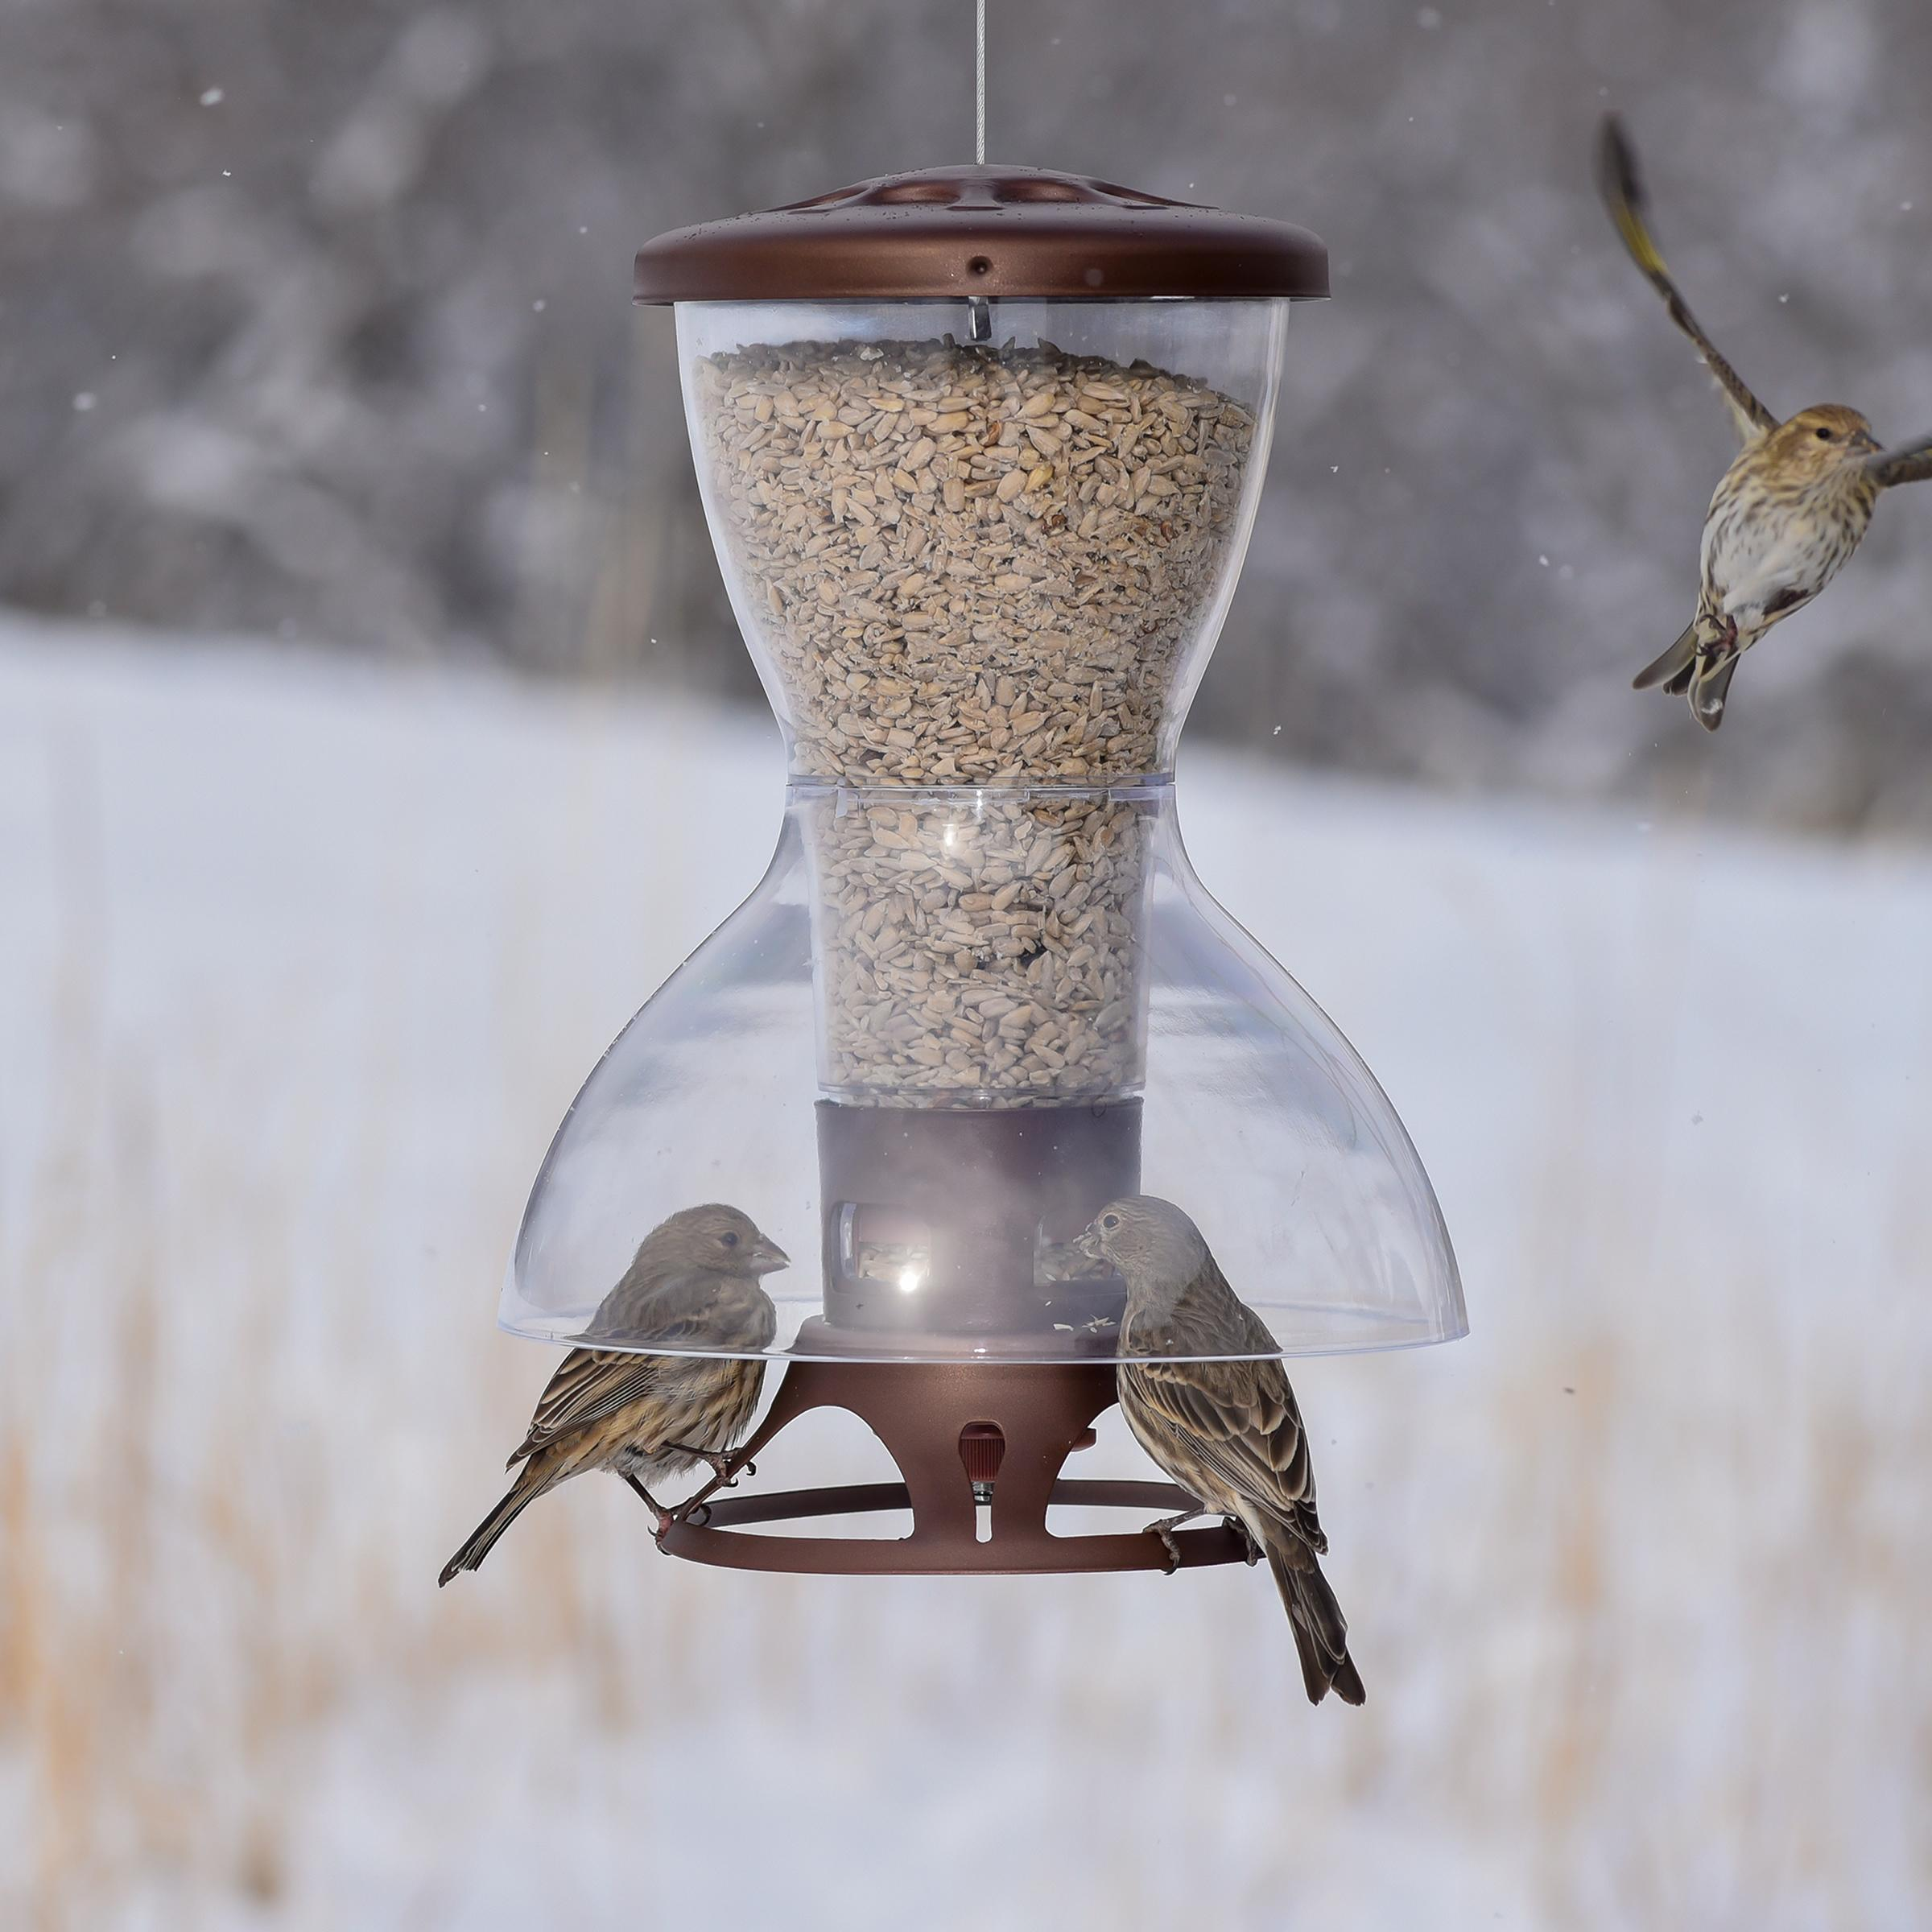 feeder proof squirrels pin to best bird how and stop brome squirrel feeders